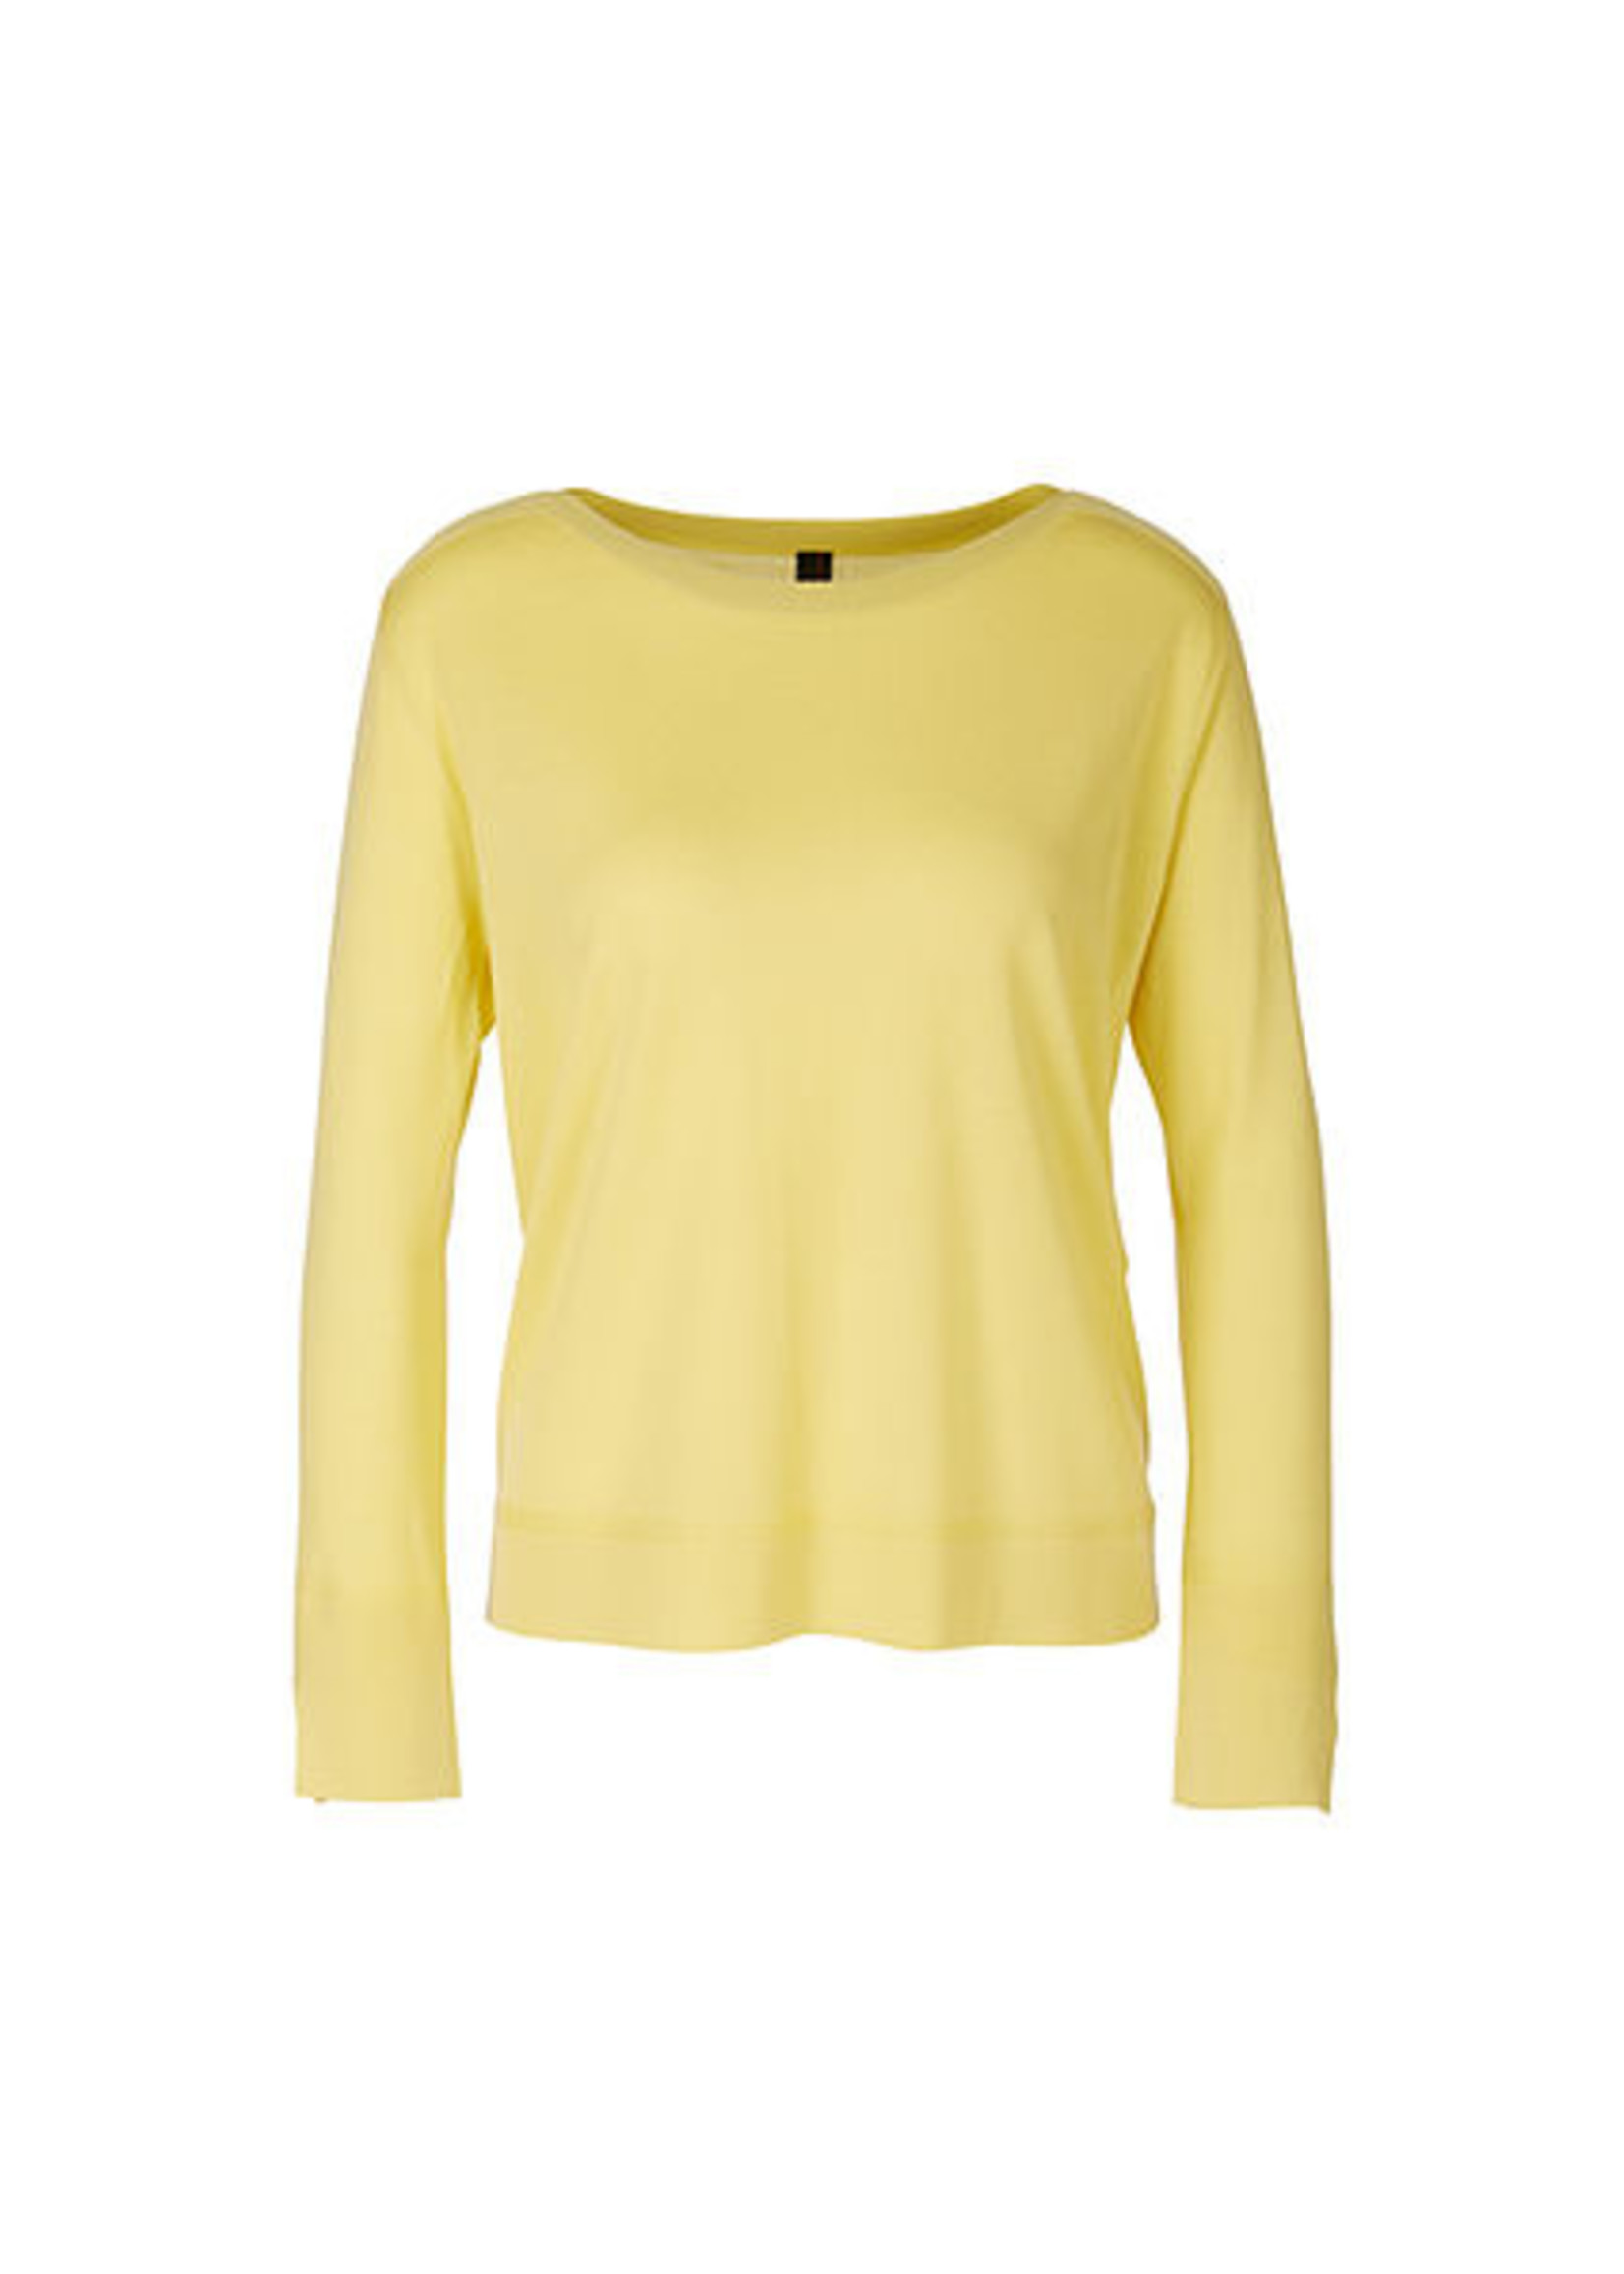 Sweater RC 41.04 M70 butter